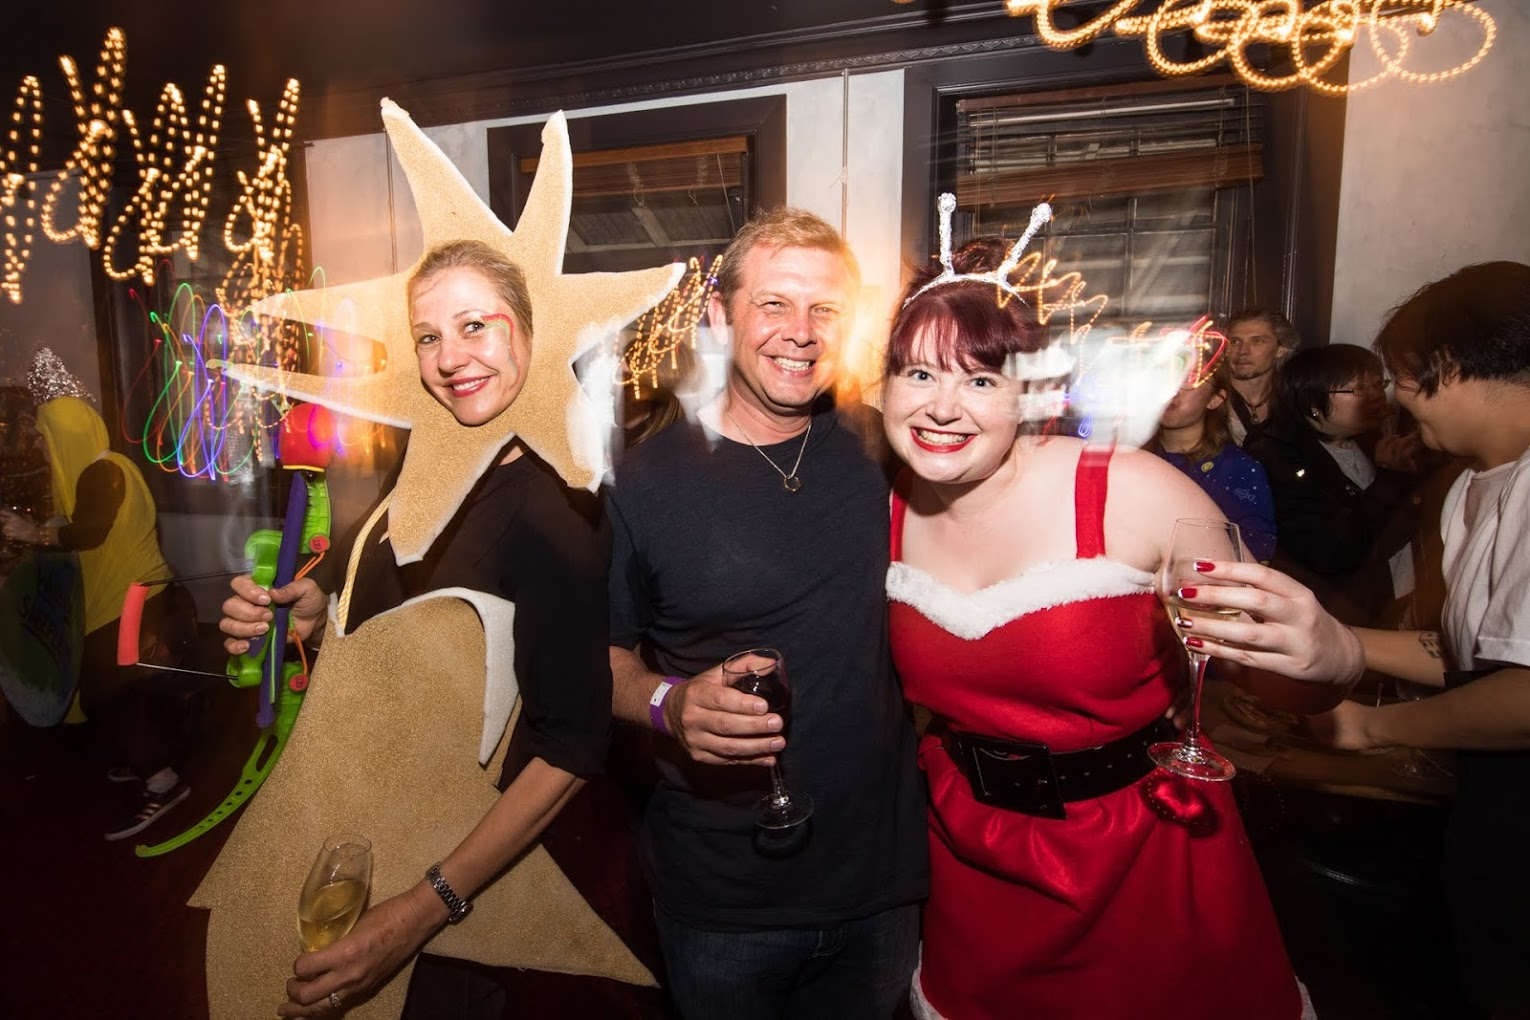 20171211_Flying Bark_Christmas Party_Photographer_Daniele Massacci_Web-6391.jpg